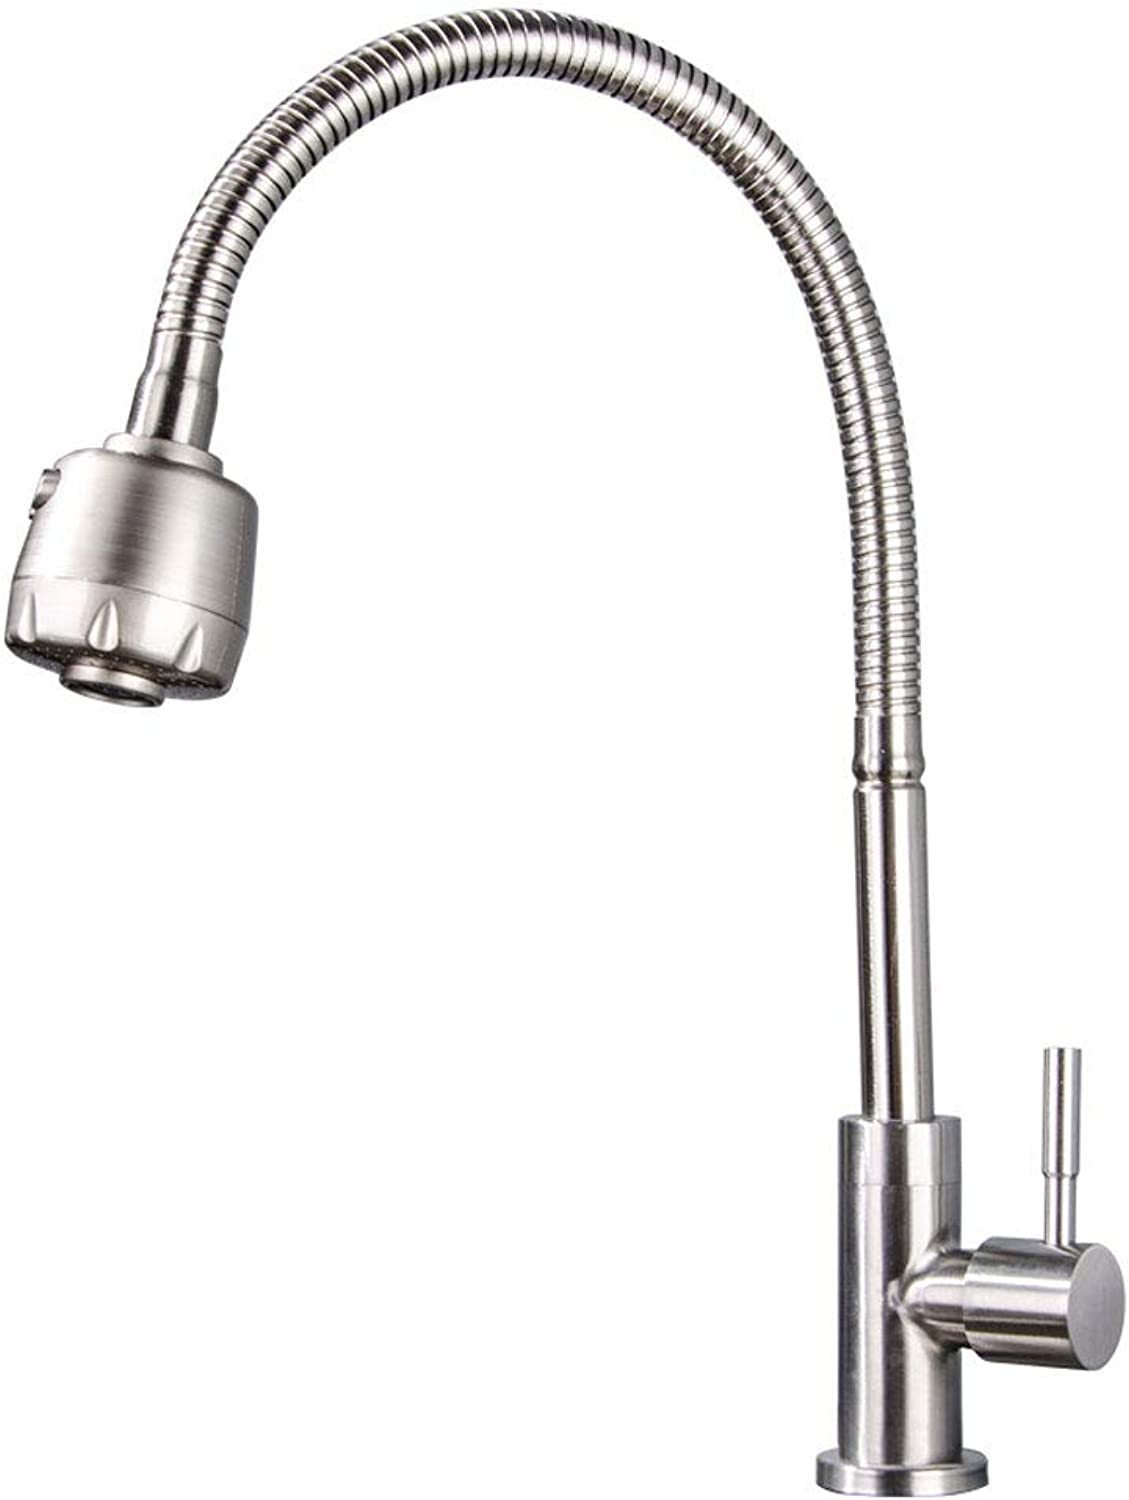 LXKY Kitchen faucet - hot and cold water redating 304 stainless steel sink basin faucet,B